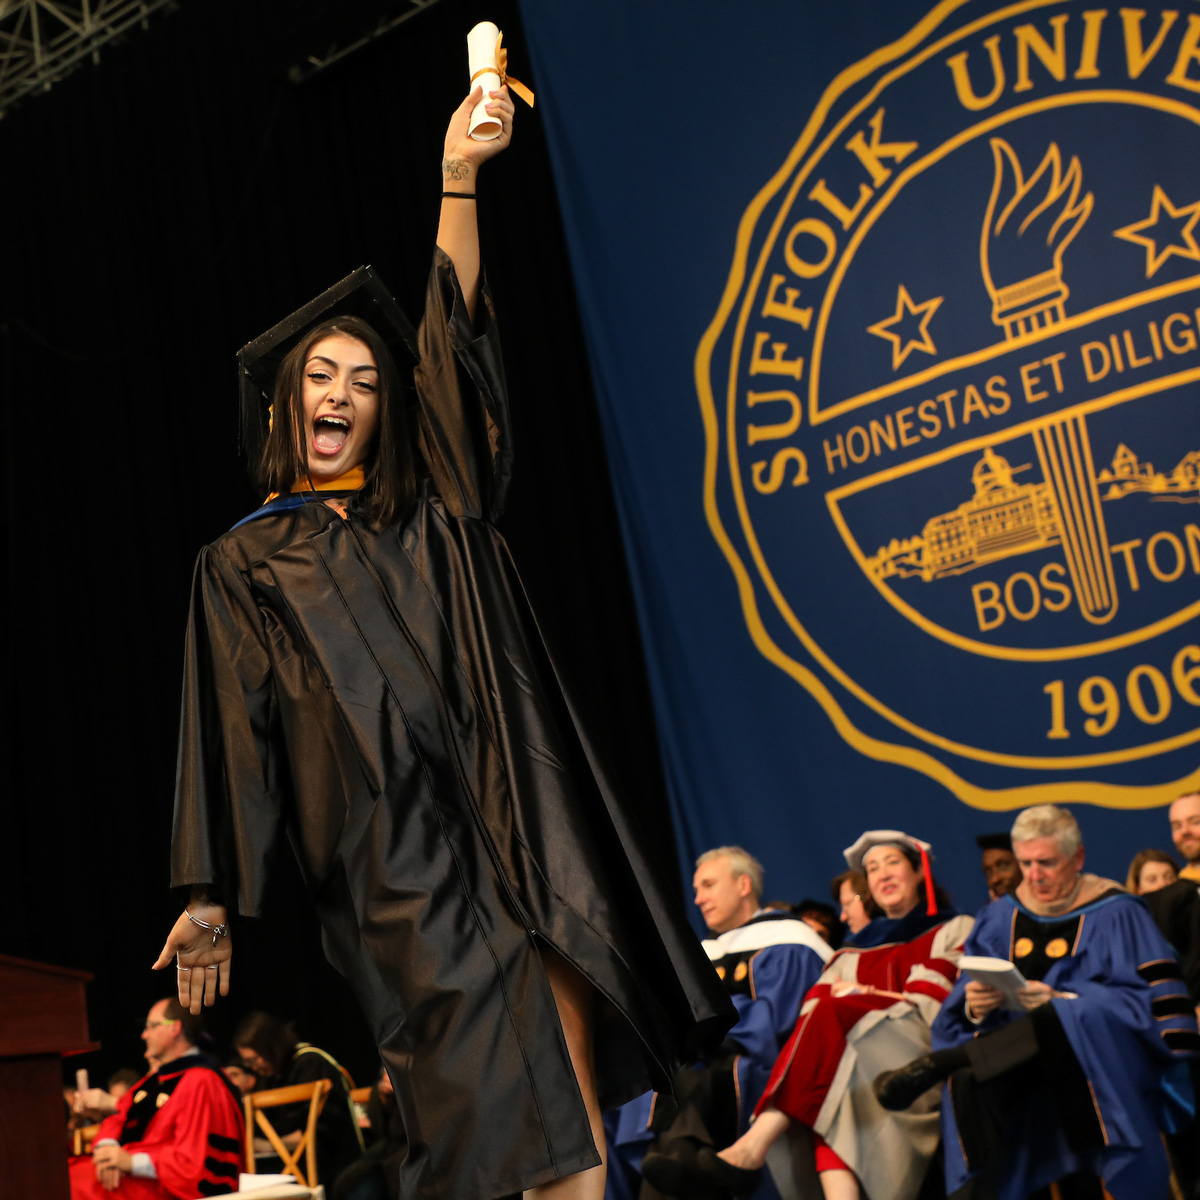 Olivia LeDonne holds up her scroll on stage during Commencement.